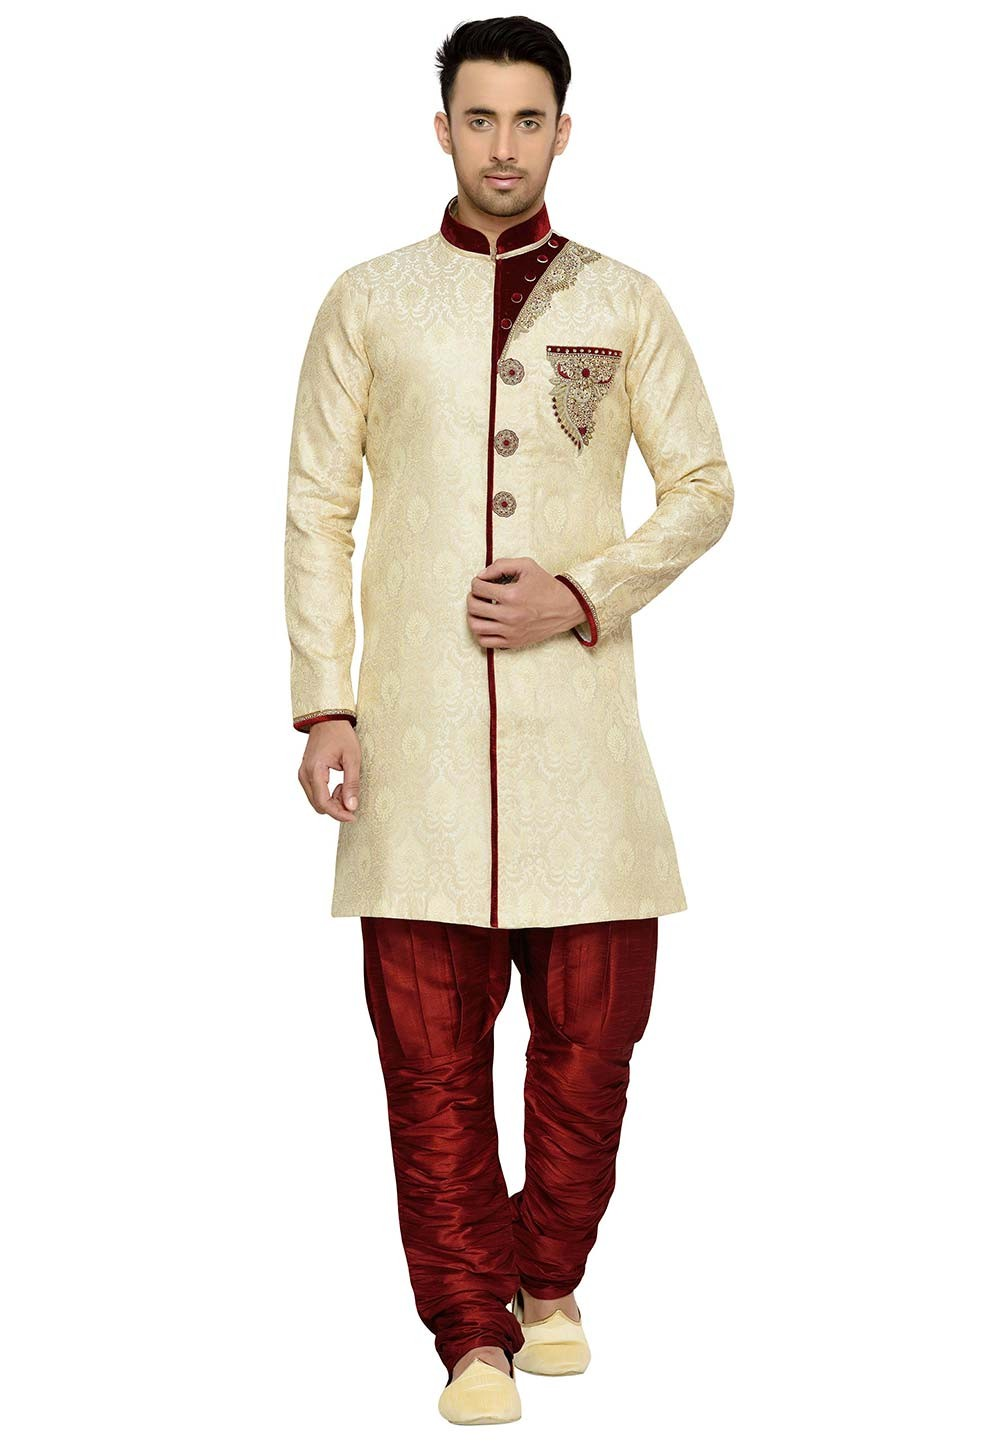 Golden Color Brocade Fabric Indian Wedding Kurta Pajama With Hand Work.